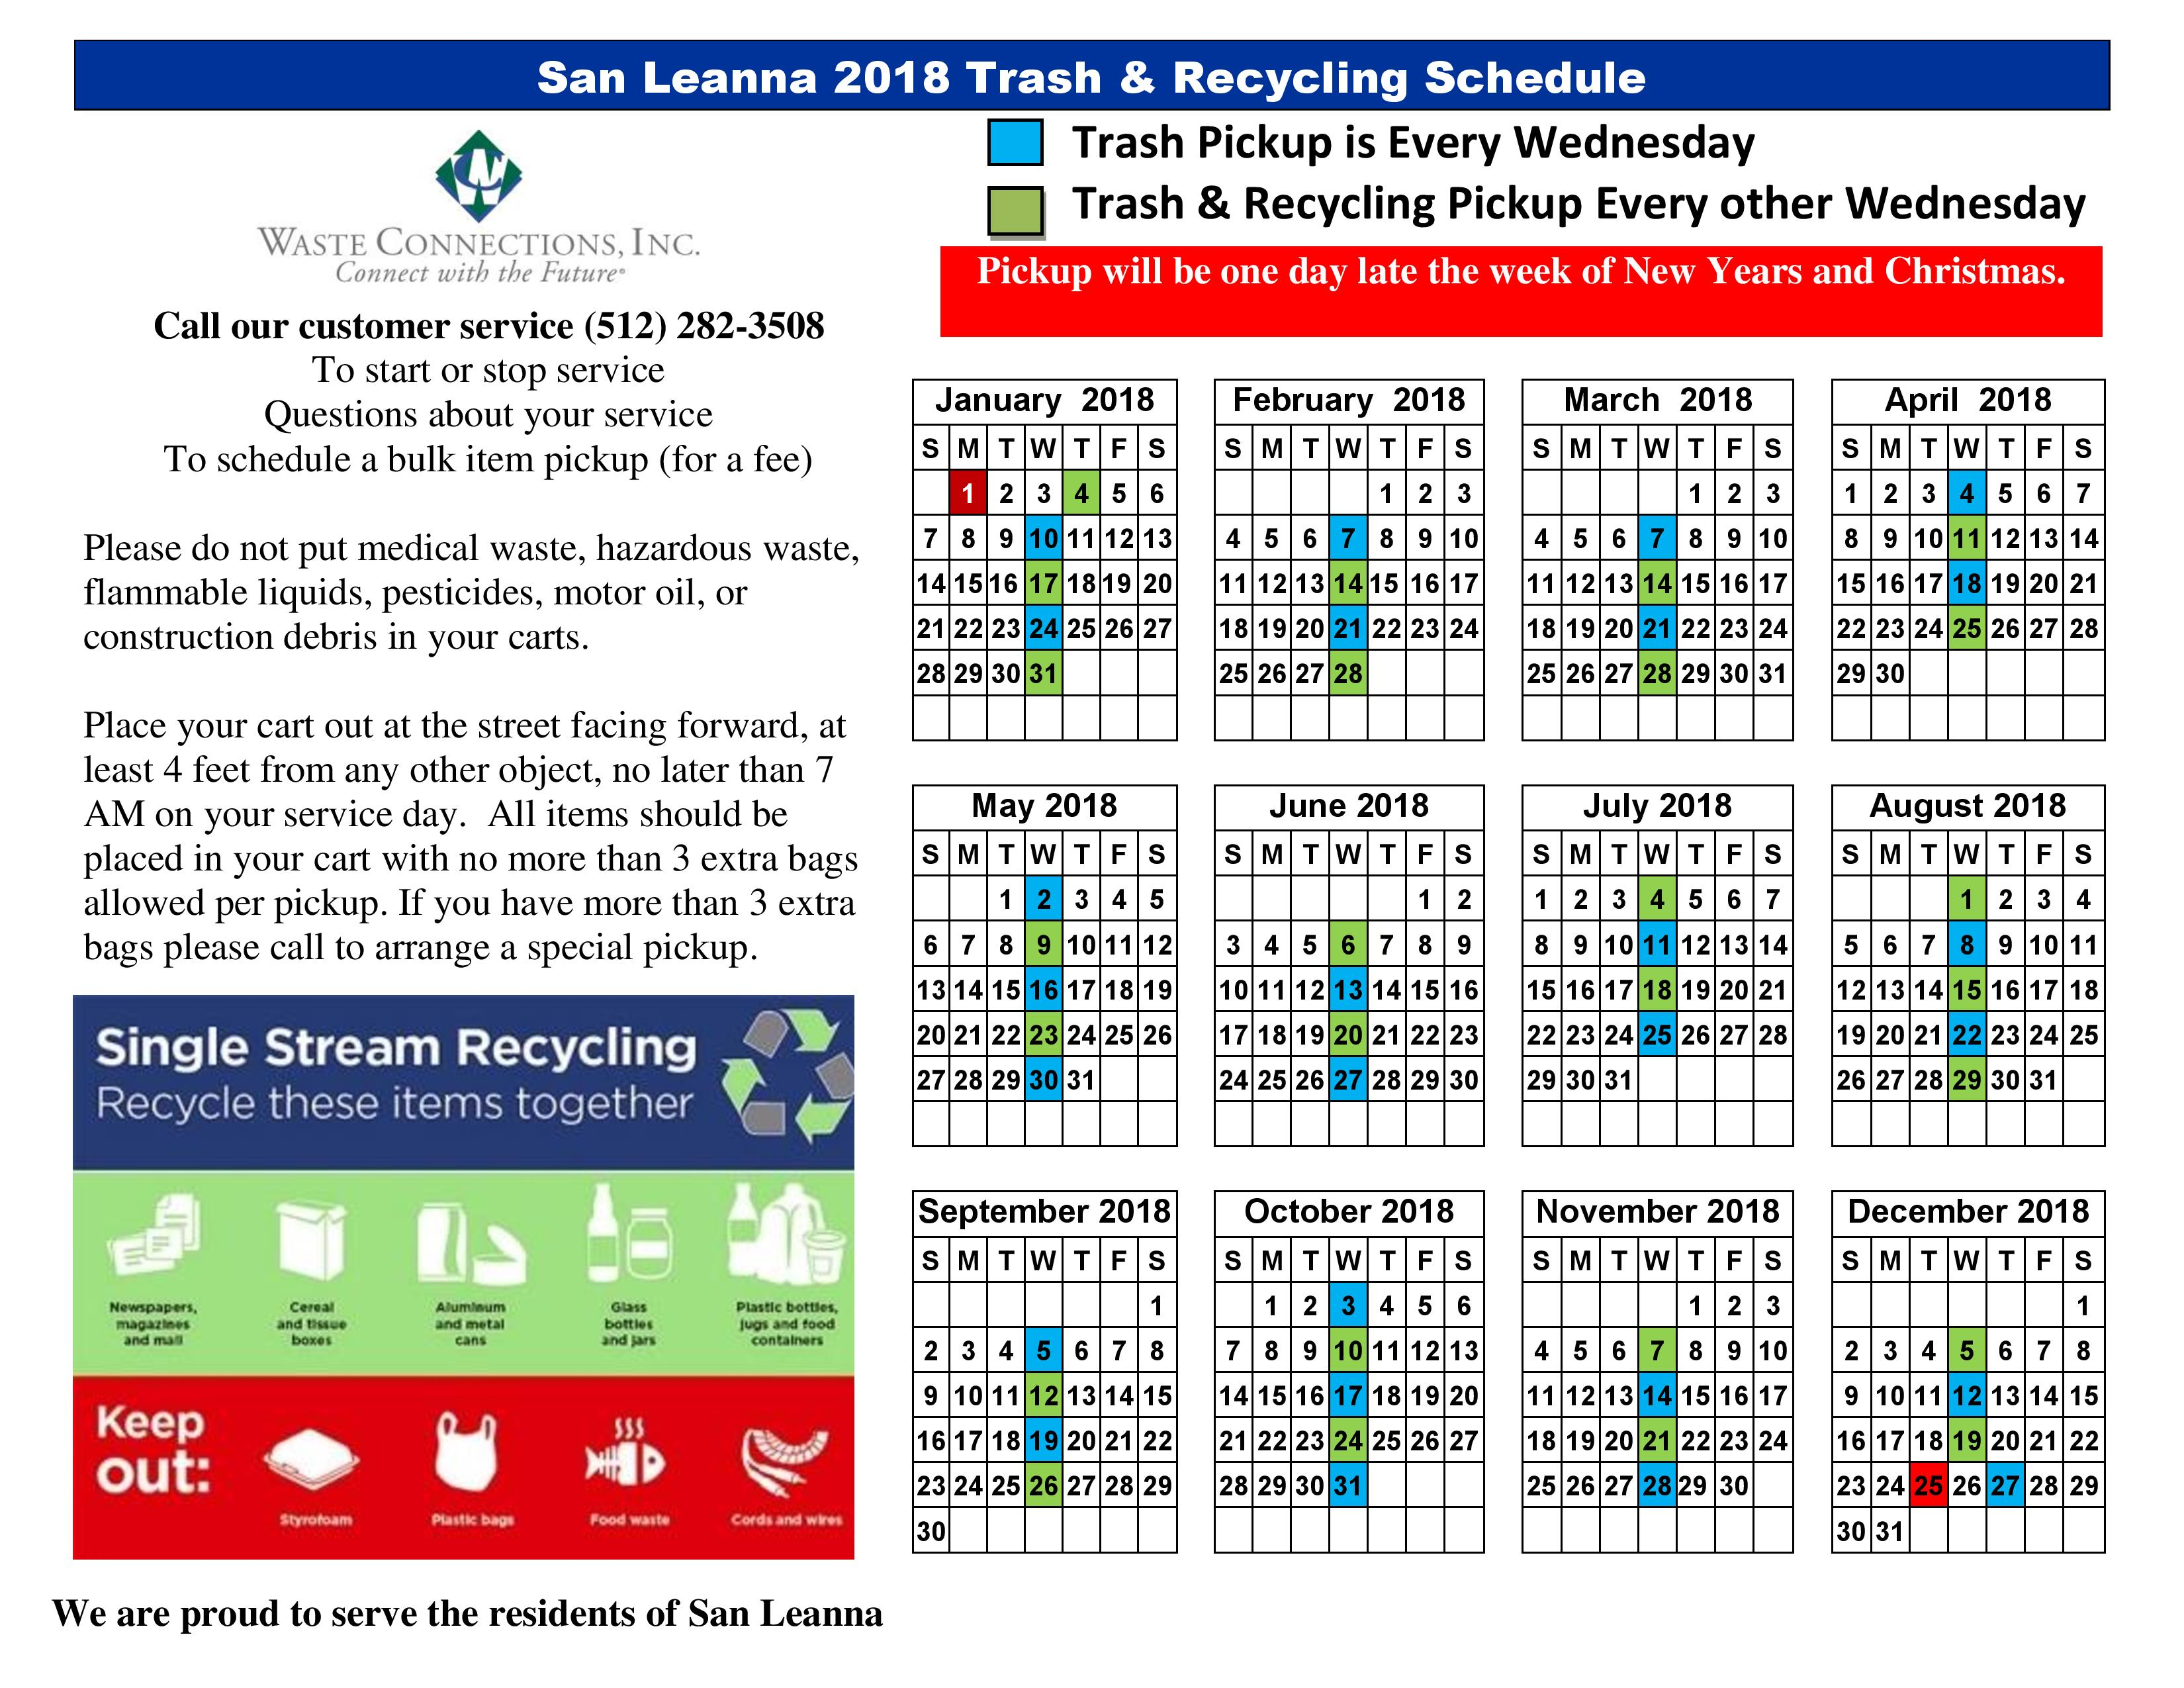 Austin Recycling Schedule 2019 Trash and Recycling Calendar 2018 – Village of San Leanna